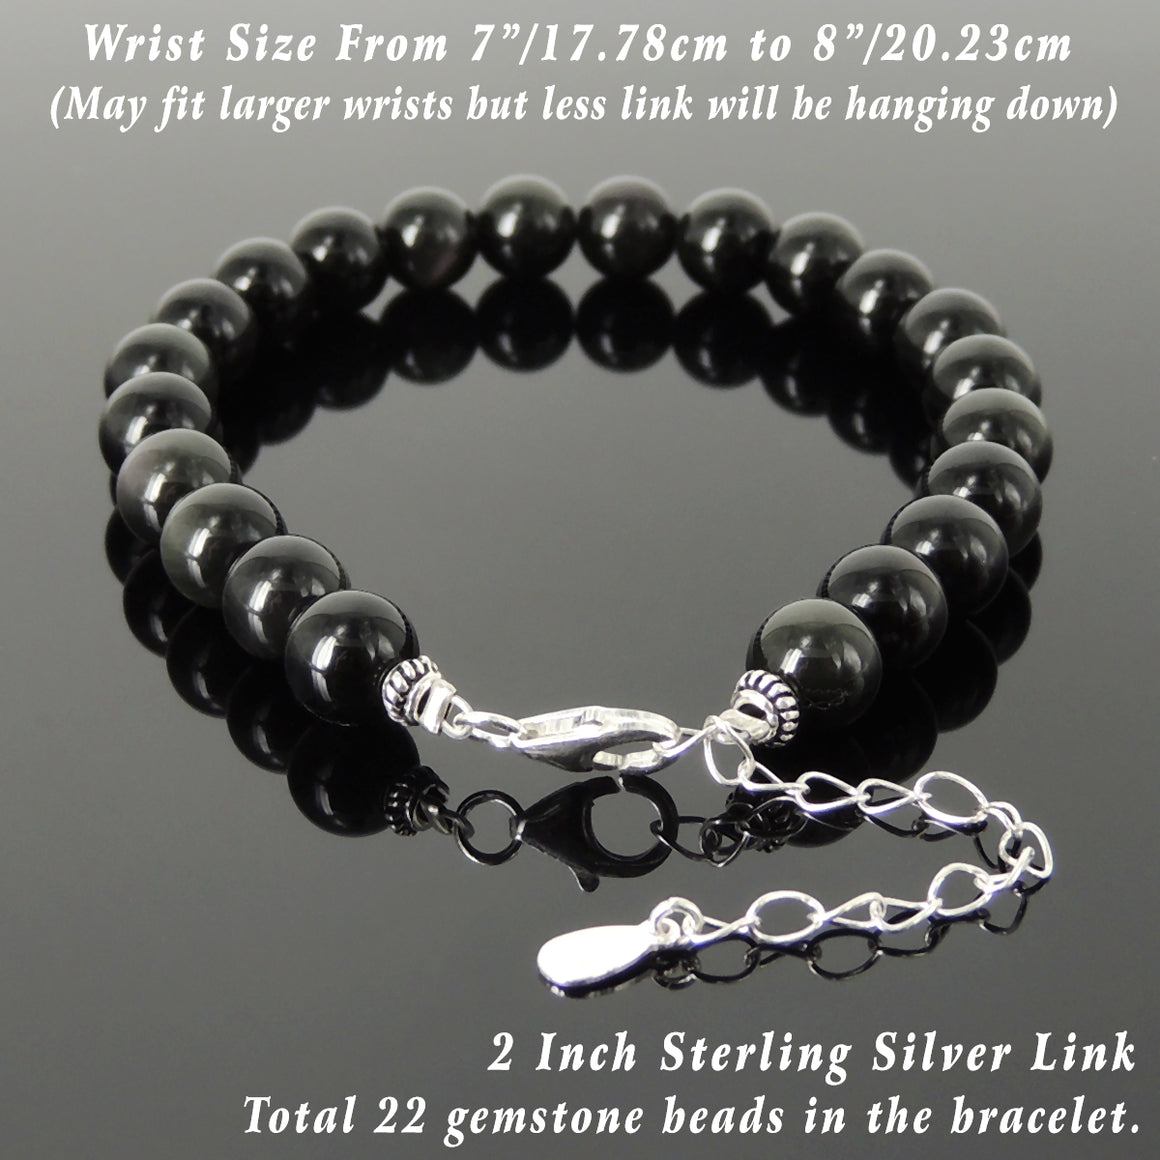 8mm Rainbow Black Obsidian Healing Gemstone Bracelet with S925 Sterling Silver Beads, Chain, & Clasp - Handmade by Gem & Silver BR1353